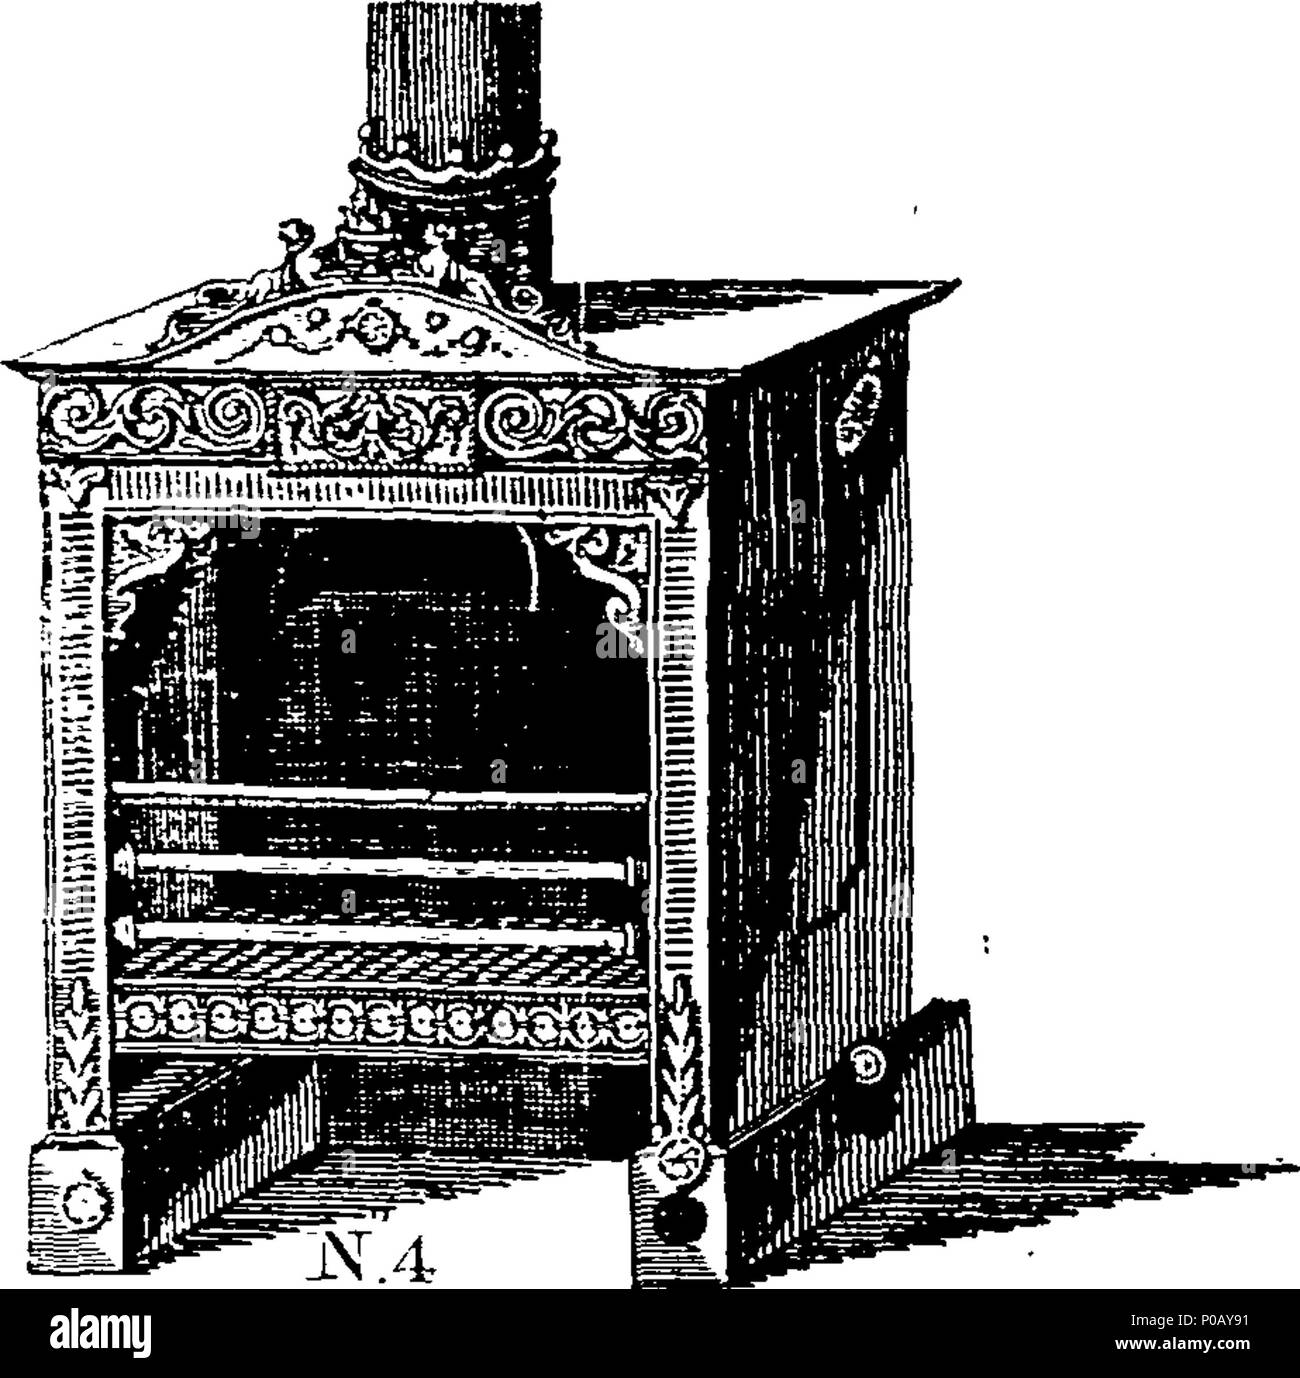 . English: Fleuron from book: An account of the principle and effects of the air stove-grates, (which warm Rooms, &c. by a continual Introduction and Exchange of dry fresh Air,) commonly known by the name of American stoves: together with a description of the late additions and improvements made to them by James Sharp, (for which his Majesty's patent is obtained,) No. 15, Leadenhall-Street, London. Either warm or cold Air may (by this Improvement) be drawn through the Stove so as to raise or lower the Thermometer at Pleasure: And, it is found by Experience, if a Room be made ever so warm it wi - Stock Image